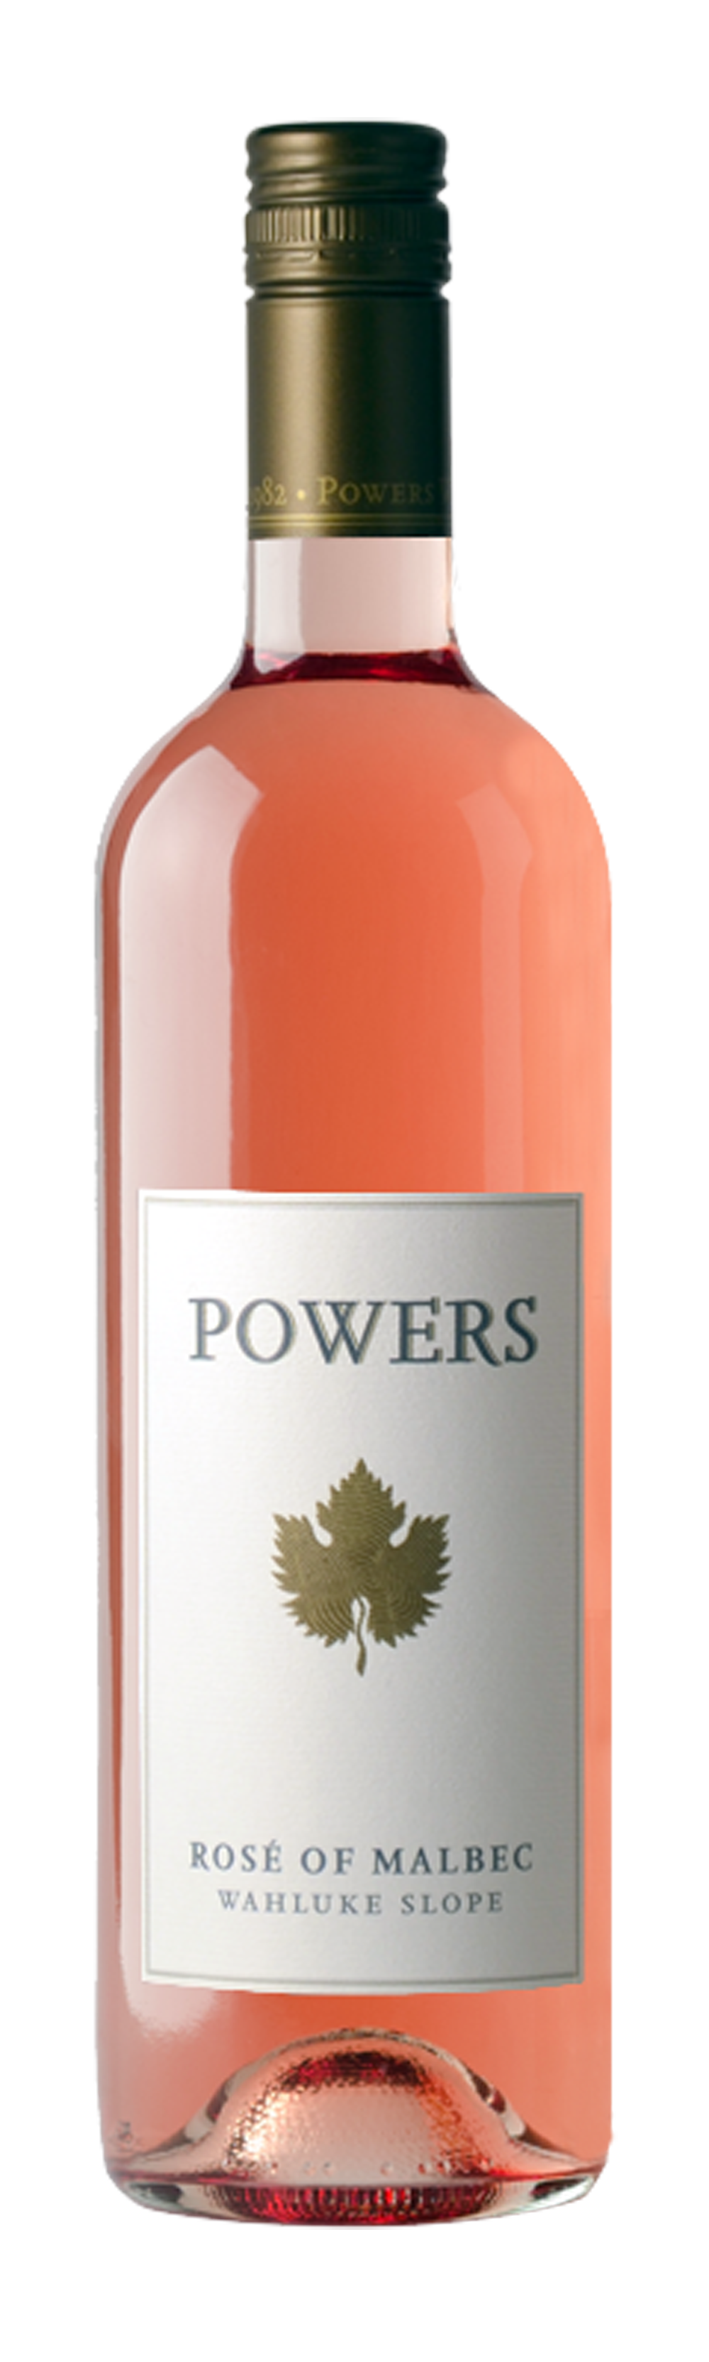 2018 Powers Rosé of Malbec Photo